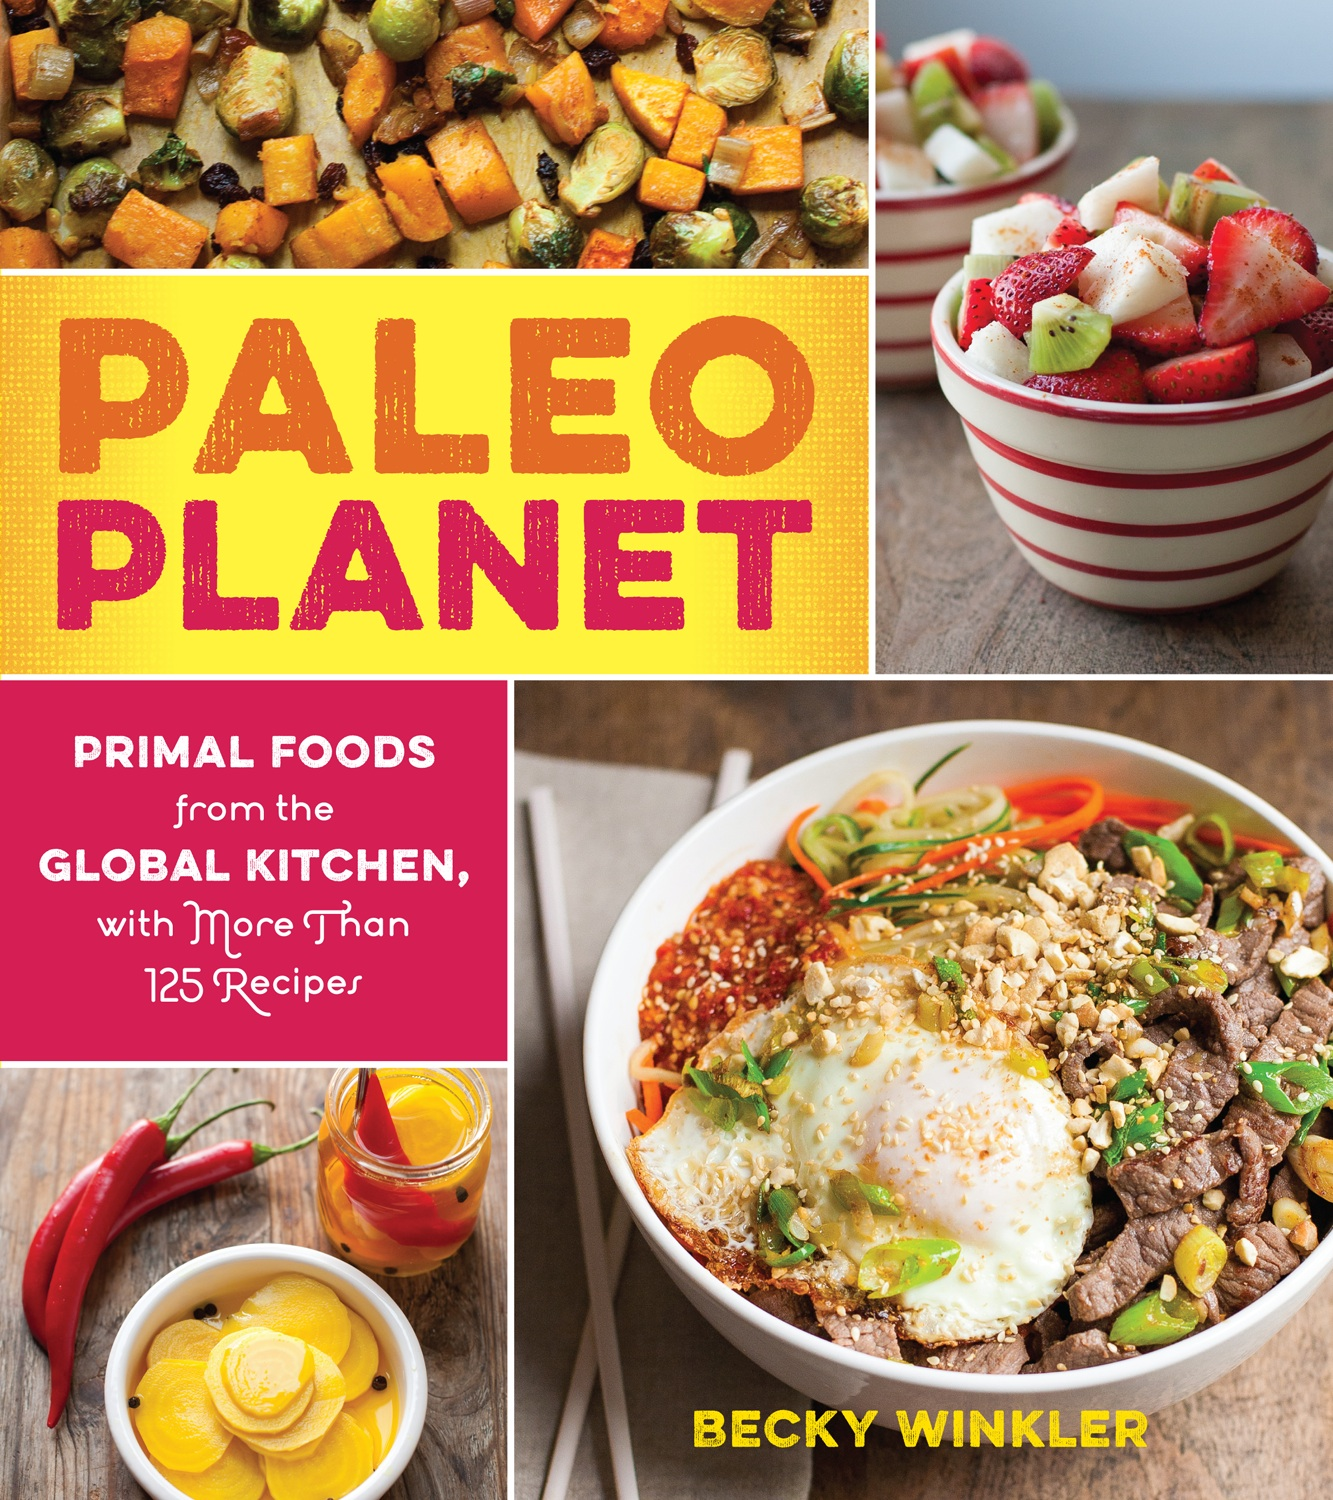 Paleo Planet: Primal Foods from The Global Kitchen, with More Than 125 Recipes